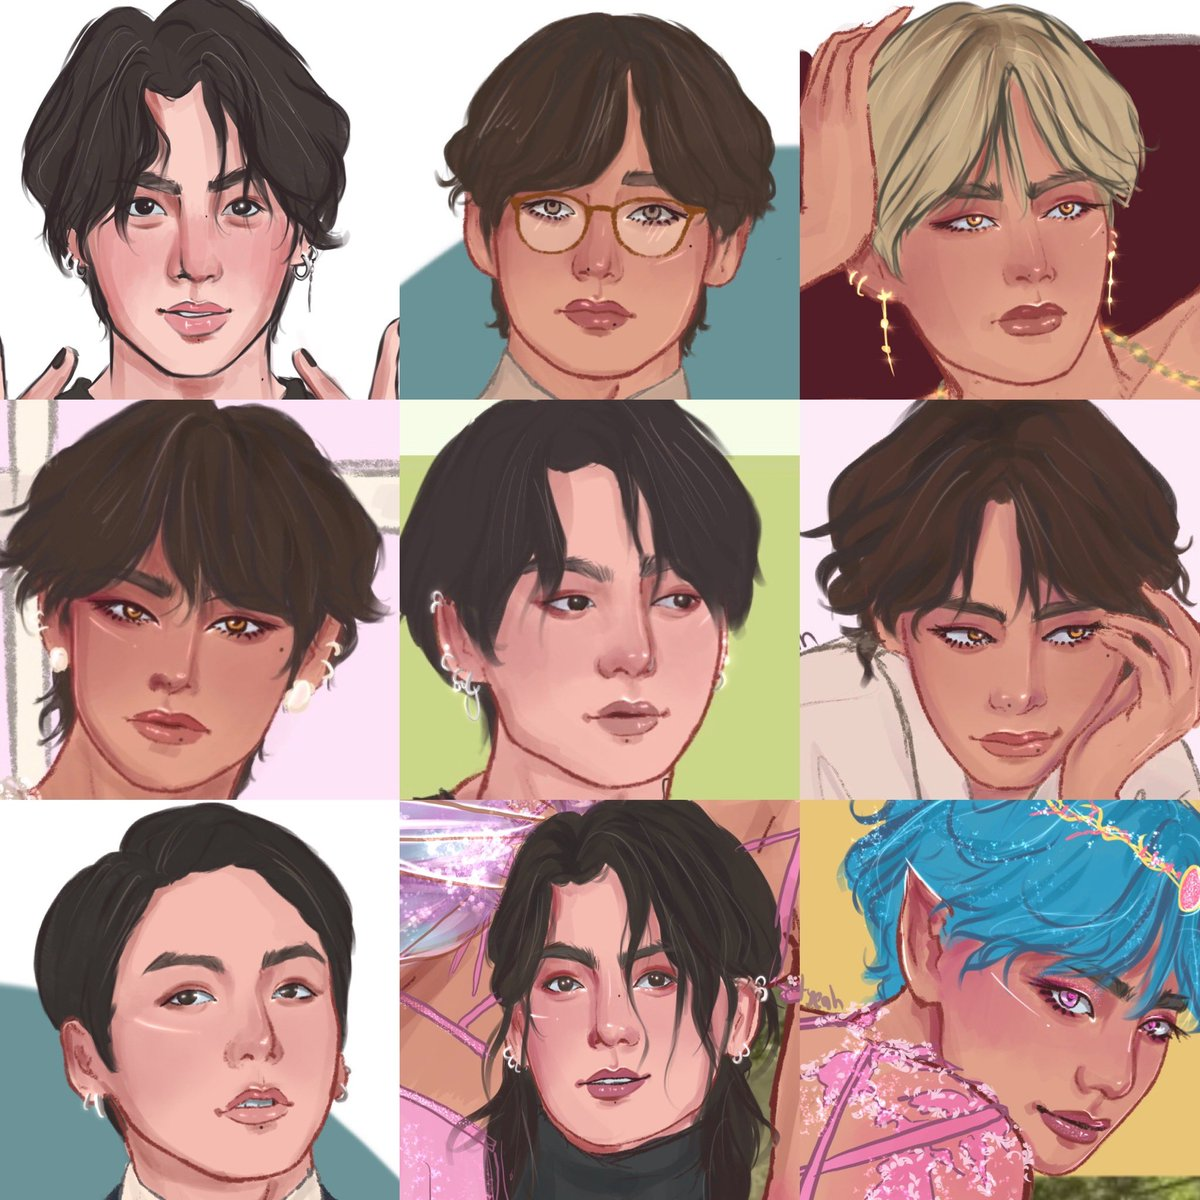 RT @lovingityeah: A taekook pretty faces overload for the #faceyourartchallenge #faceyourart #taekook #btsfanart https://t.co/mhDjvCI40A